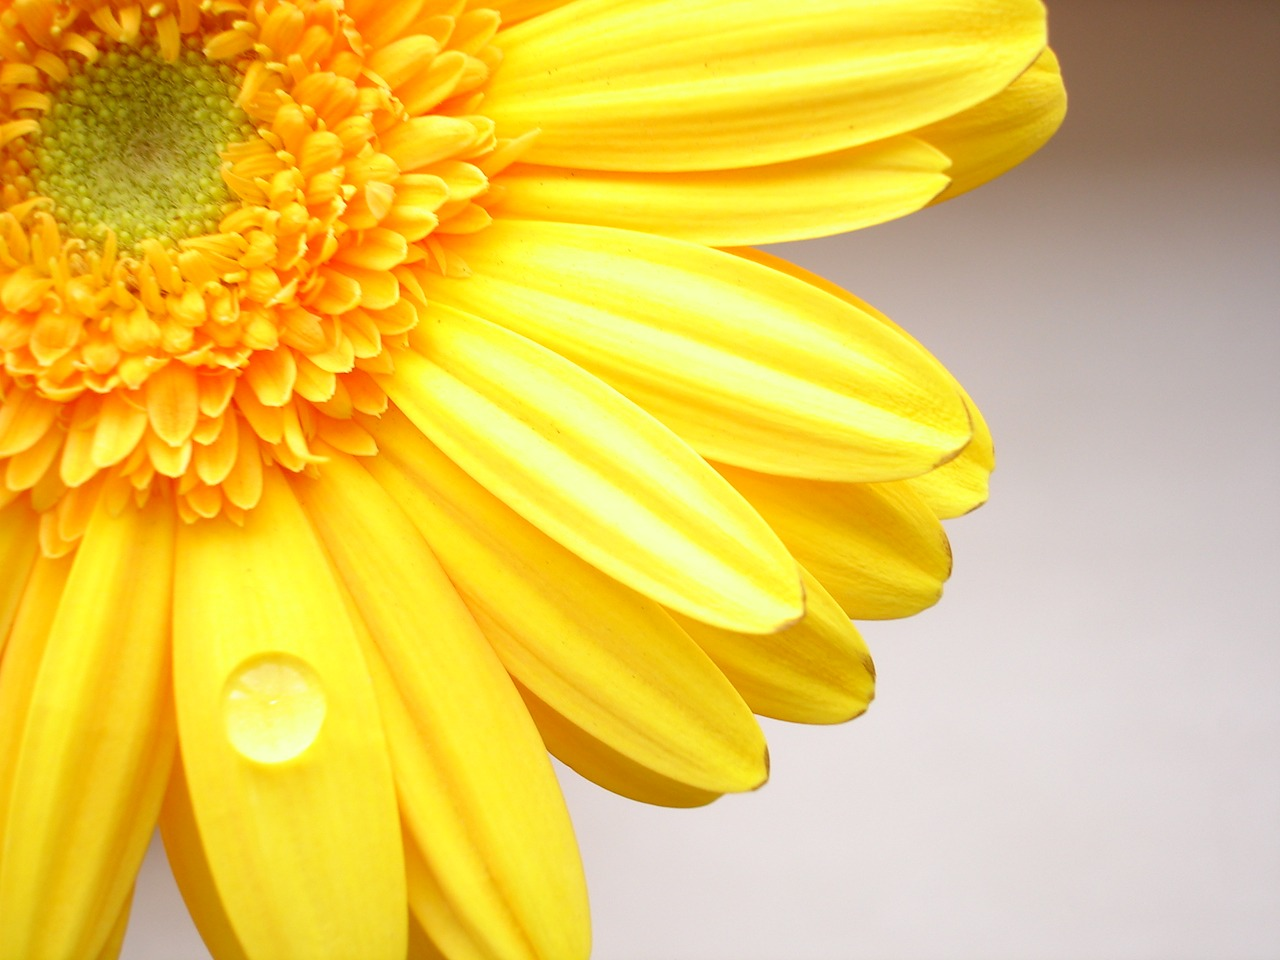 Sun Flower Wallpapers Yellow color flower wallpaper